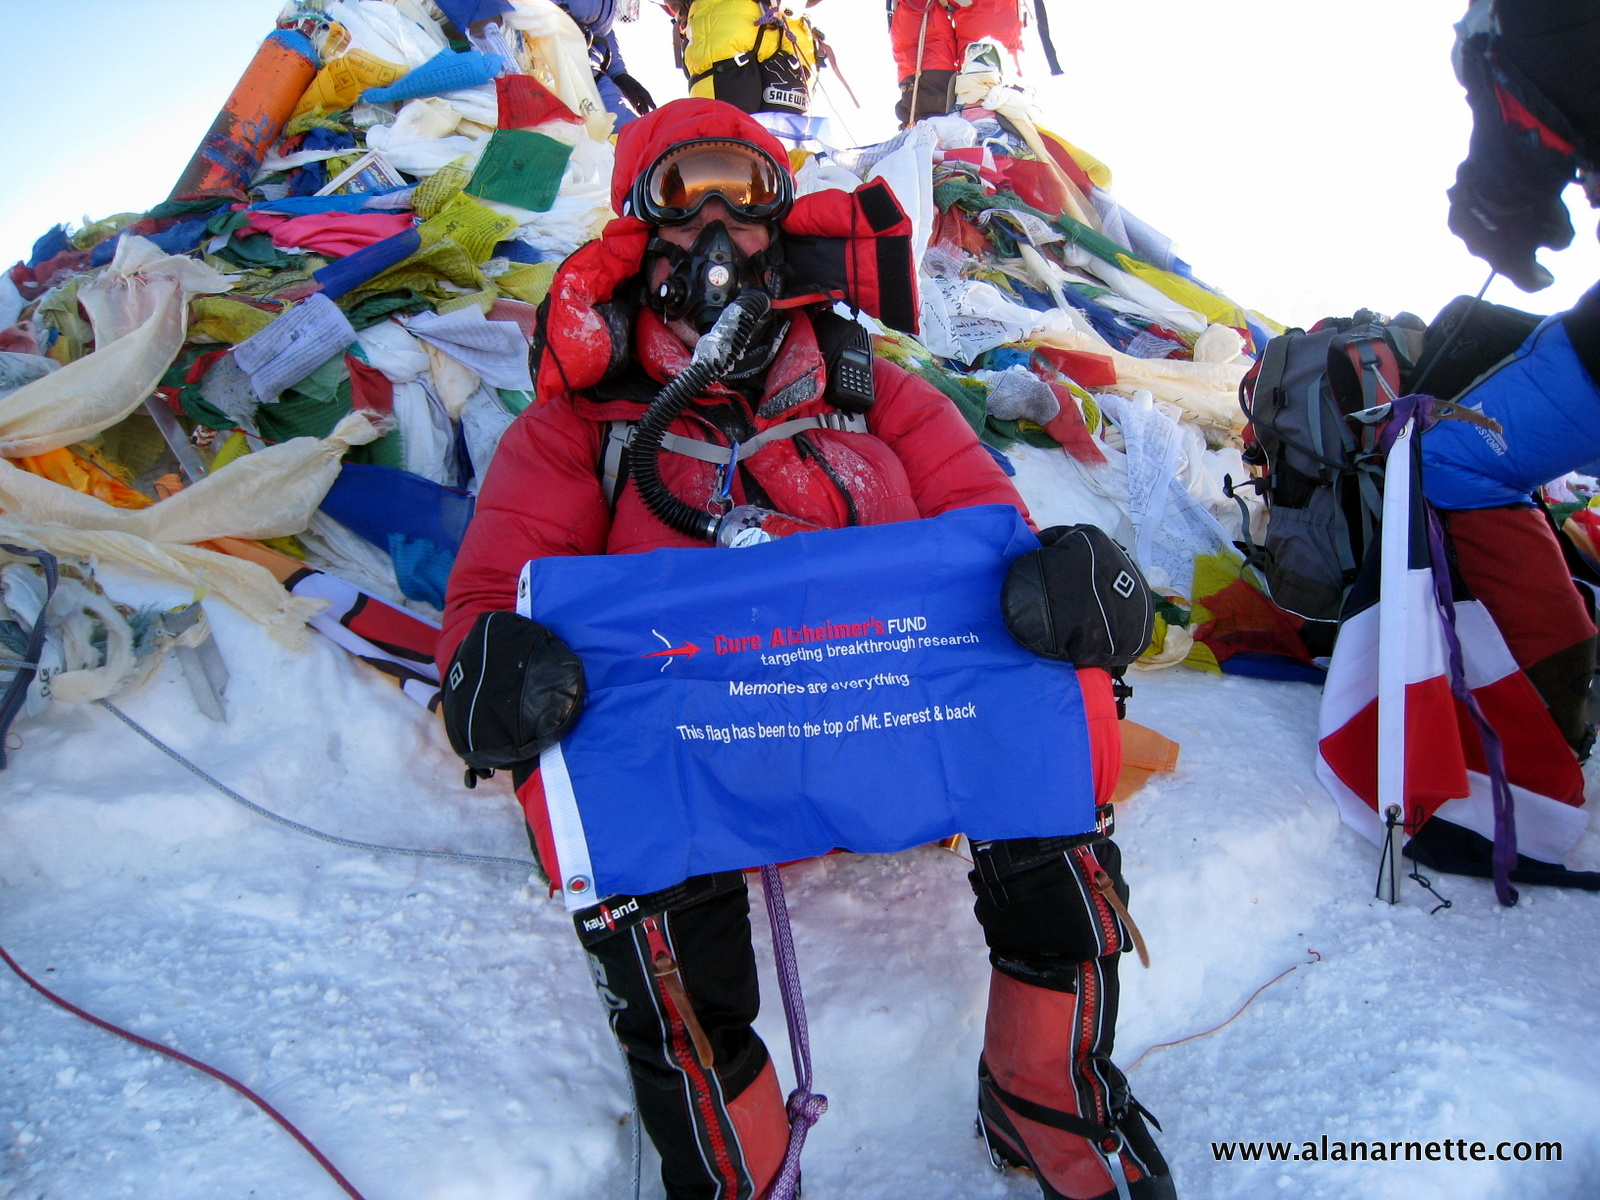 Cure Alzheimer's Fund on Everest